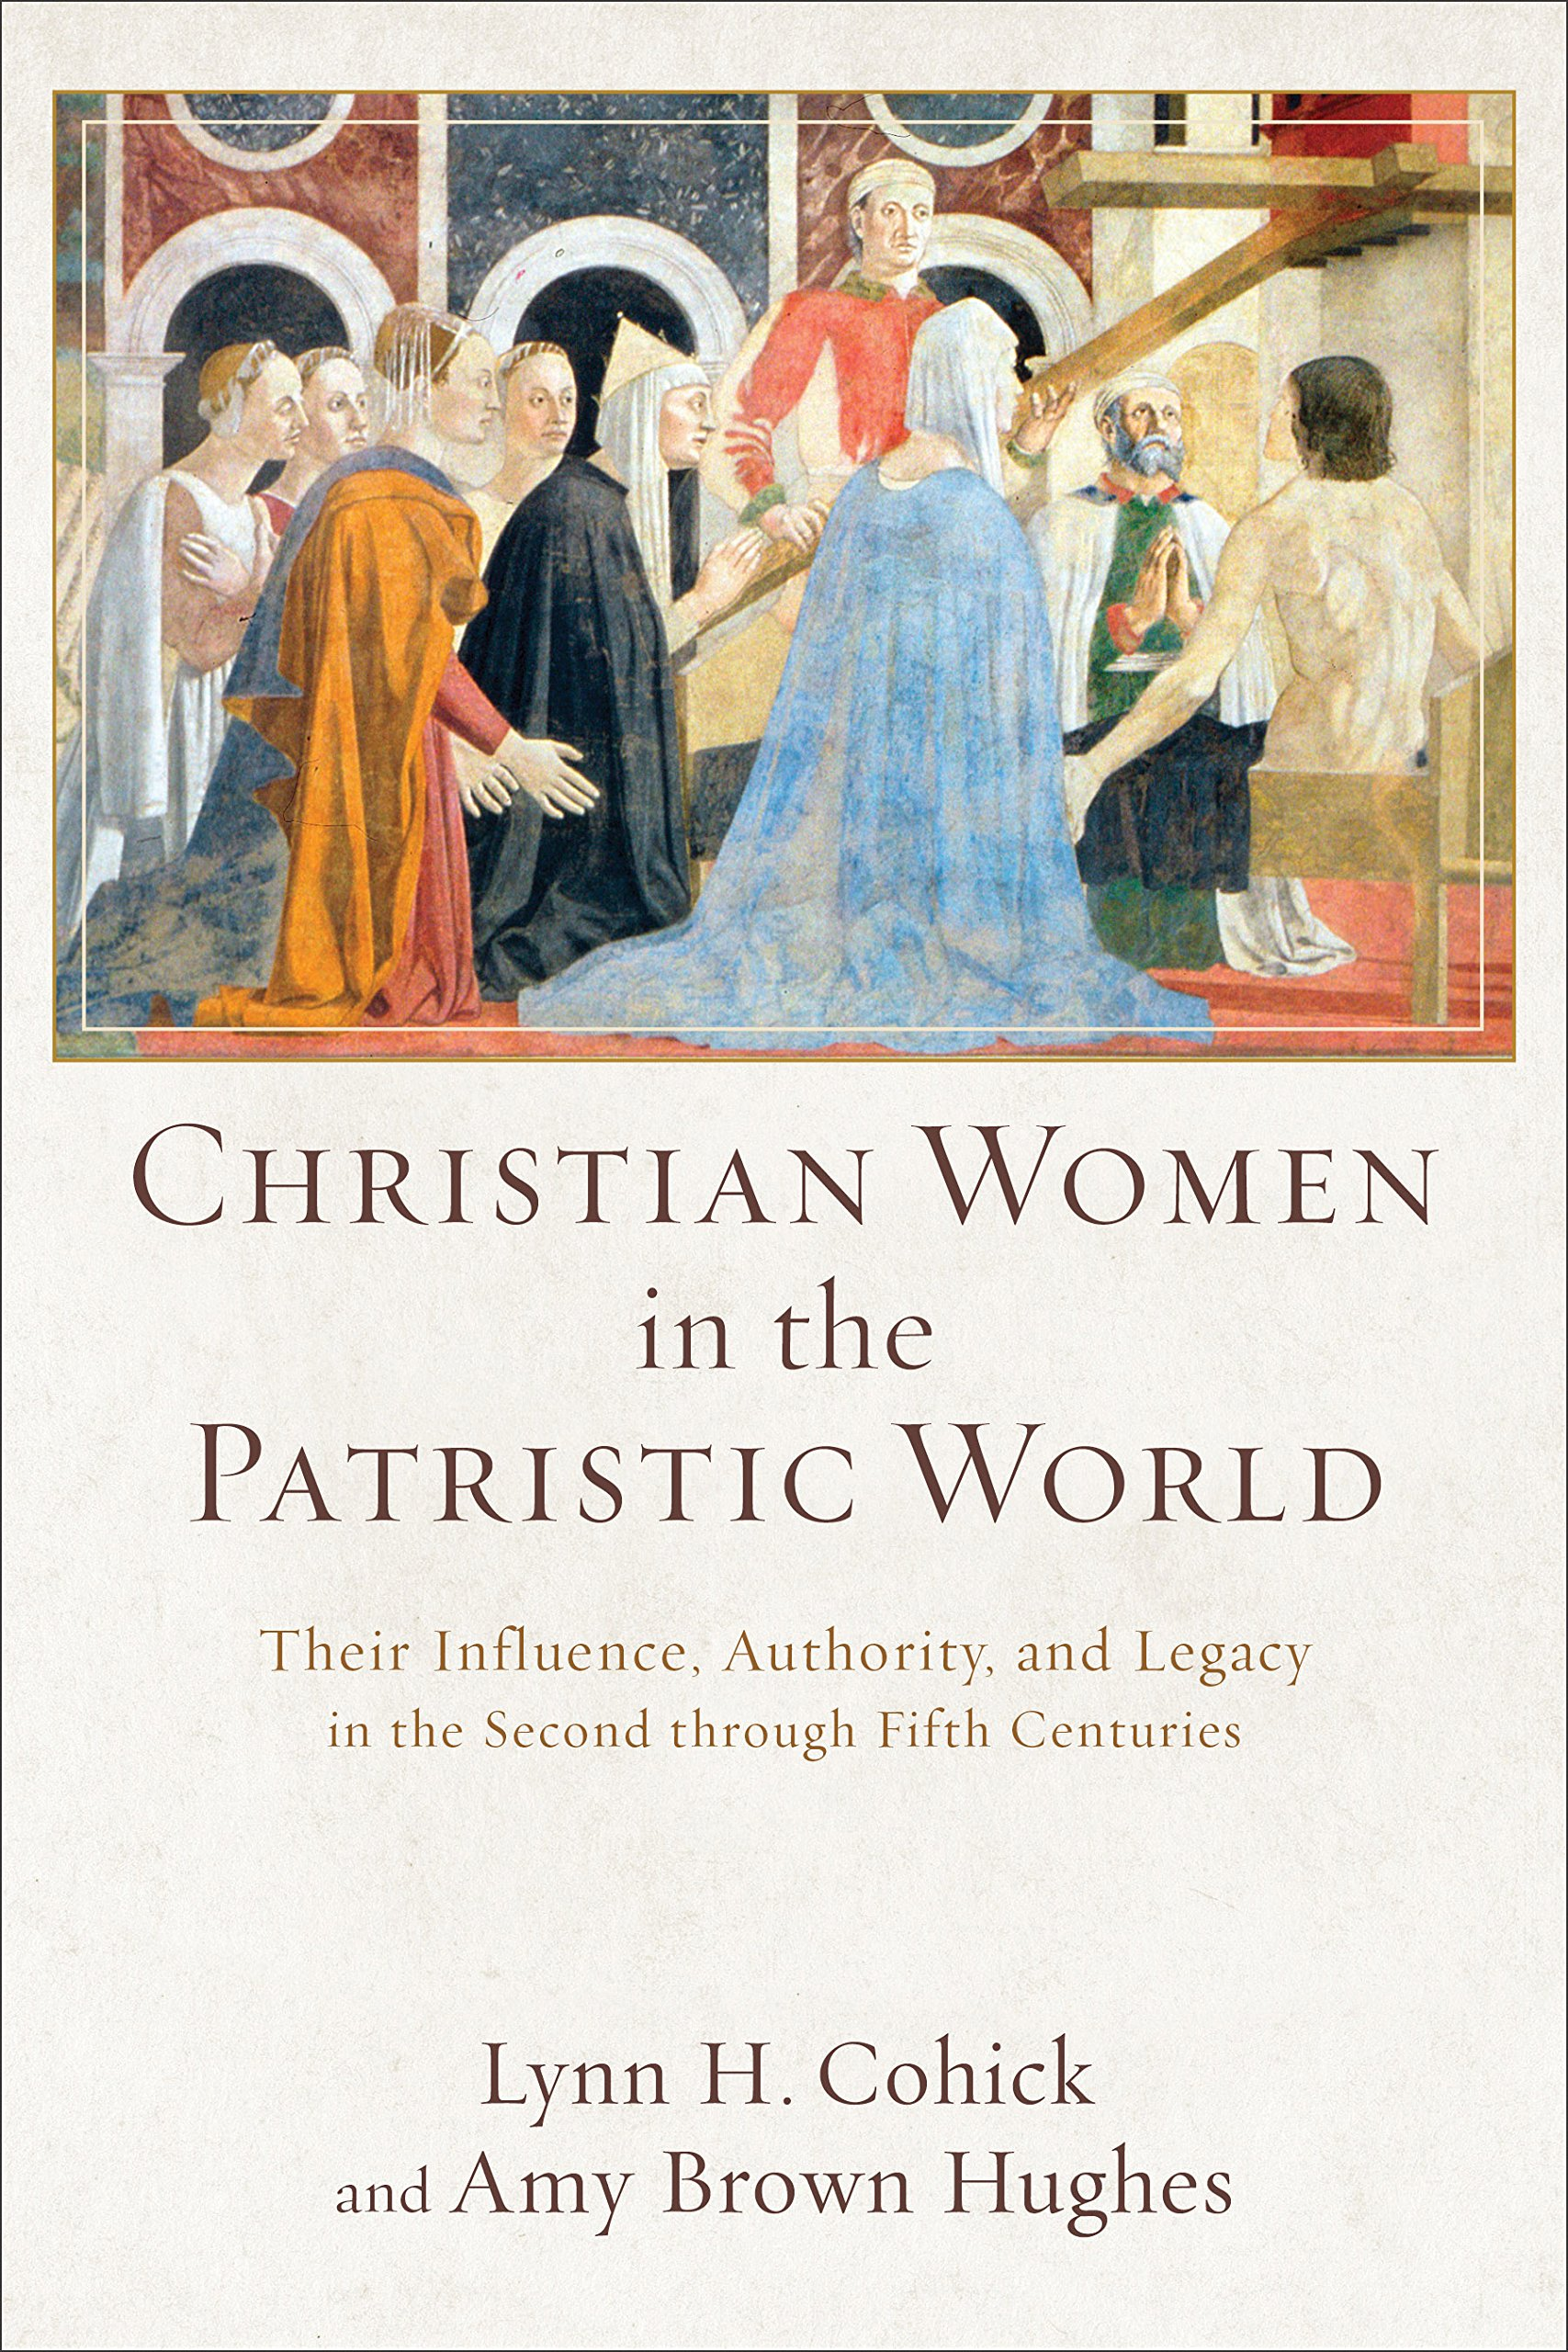 Christian Women in Patristic World